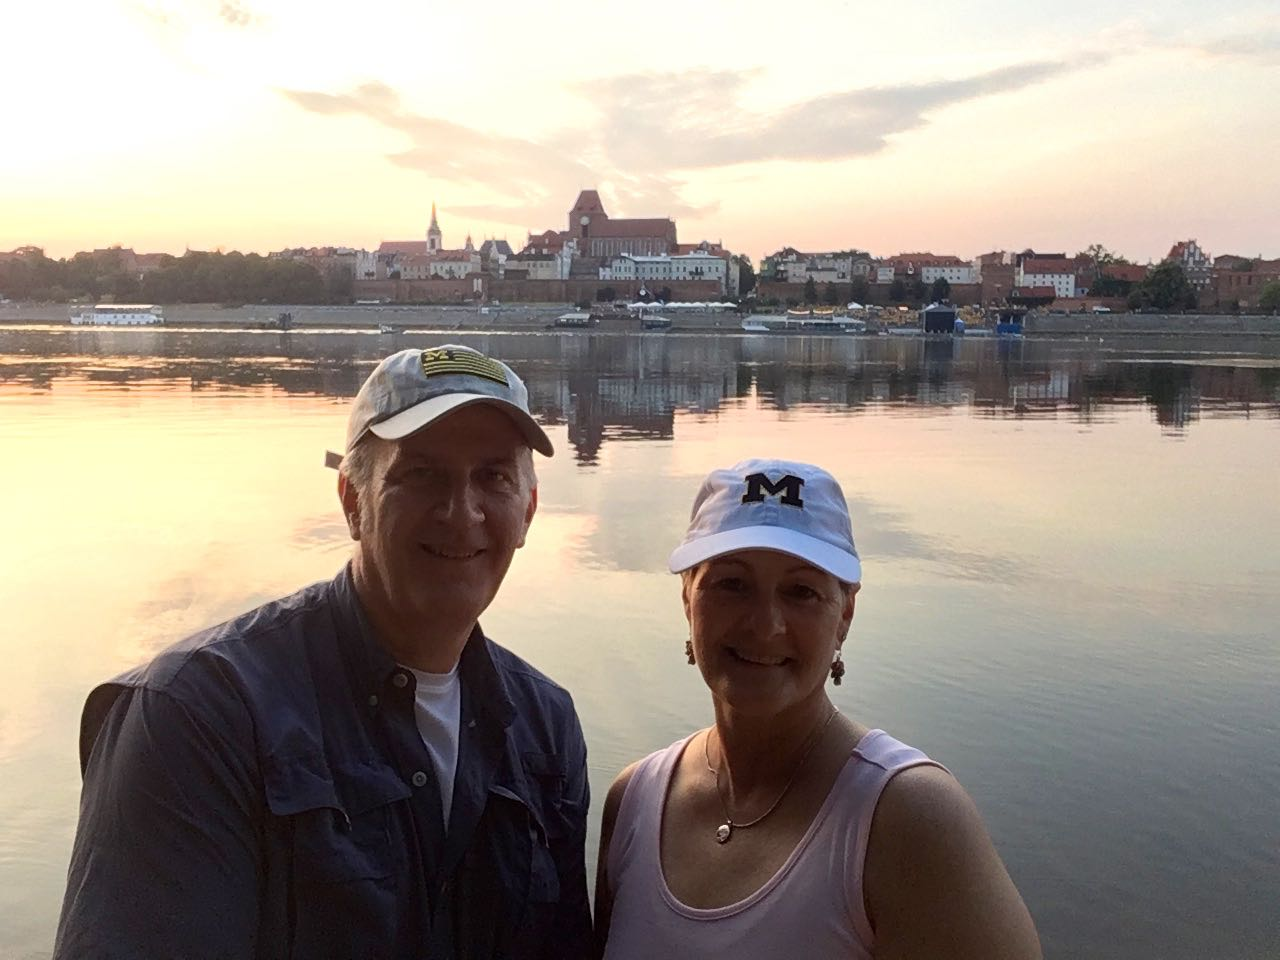 John Hembruch, '84, and Therese Barnes Hembruch, '83, created their own family heritage tour of old Prussia over the summer. Here, they stood on the south bank of the Vistula River, with the medieval town of Toruń, Poland, in the background.